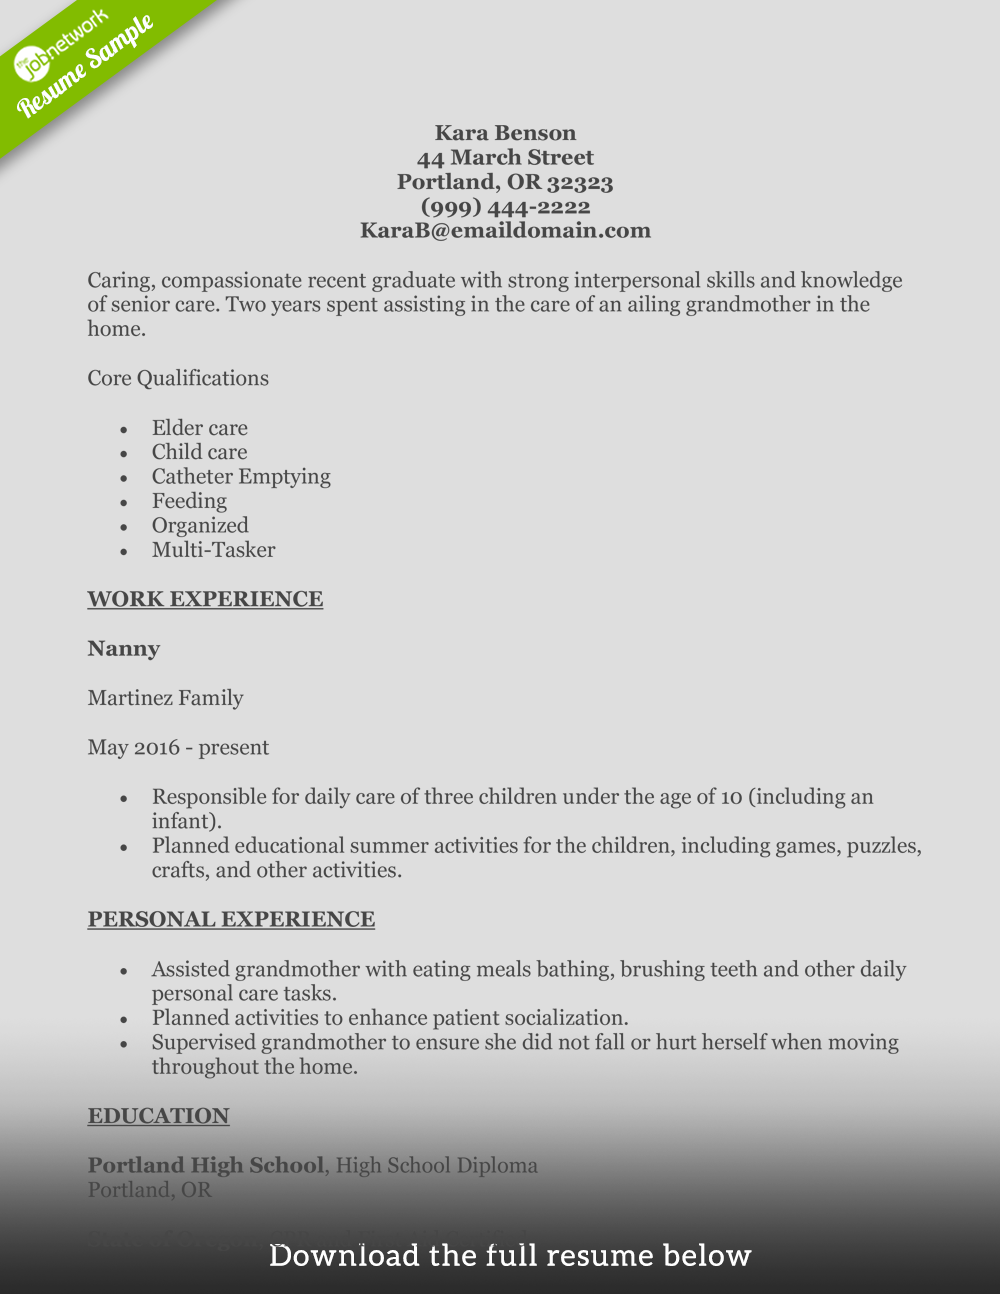 Home Health Aide Resume Entry Level  How To Write Resume